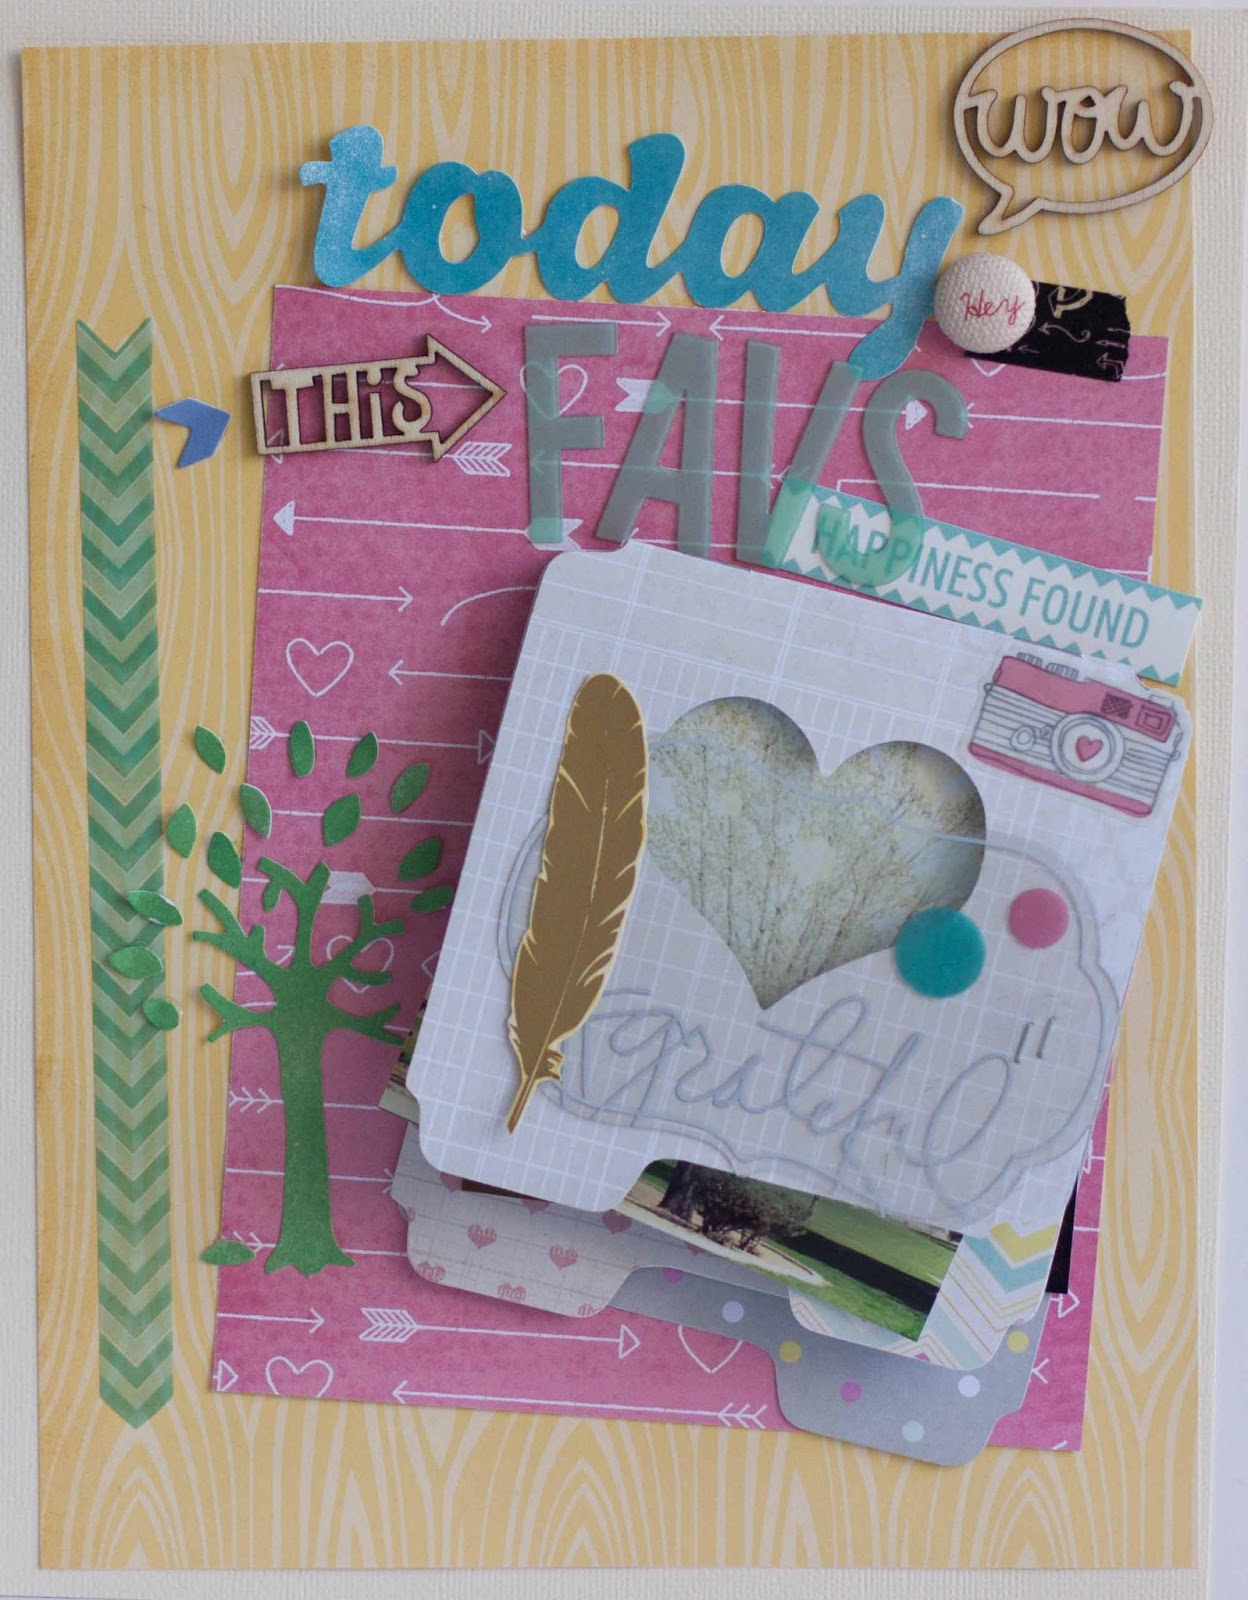 How to delete scrapbook photos google+ - My Challenge On The Scrapbook Circle Blog Today Was To Use Clear Elements In A Layout I Love The Heidi Swapp Clear Pop Goodies The Amy Tan Stickers And